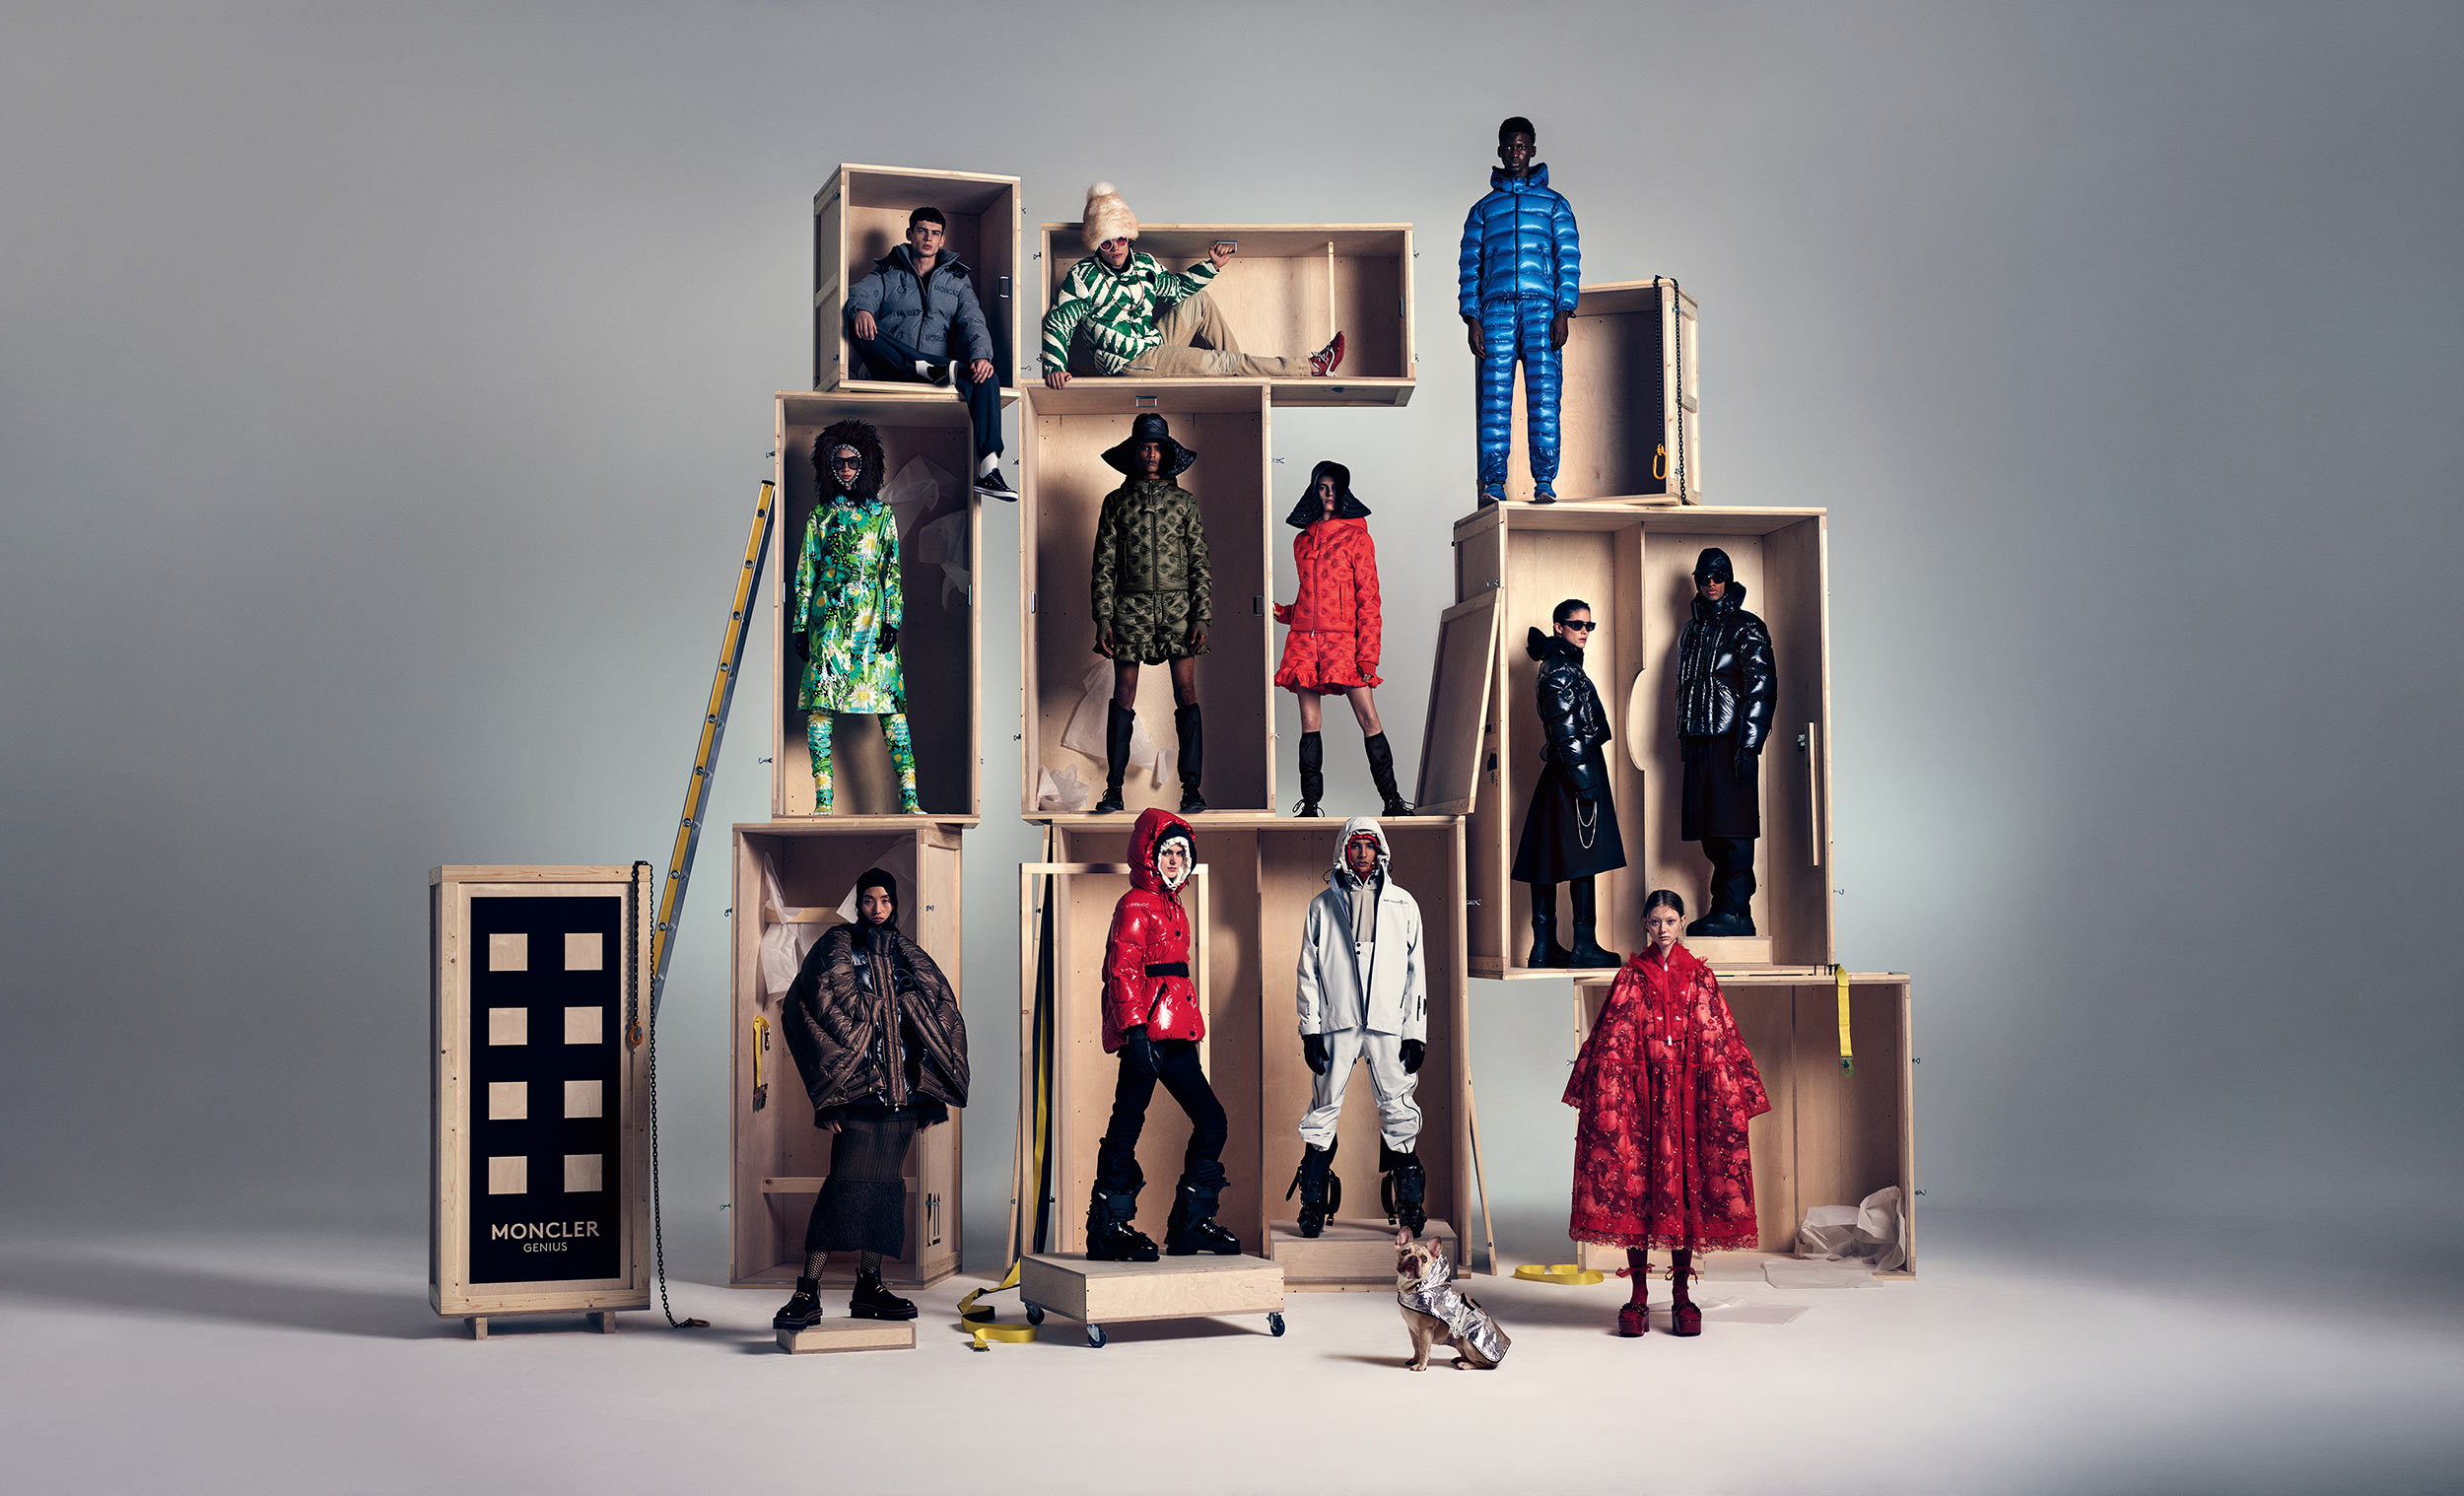 J.W. Anderson is the latest addition to the Moncler Genius roster